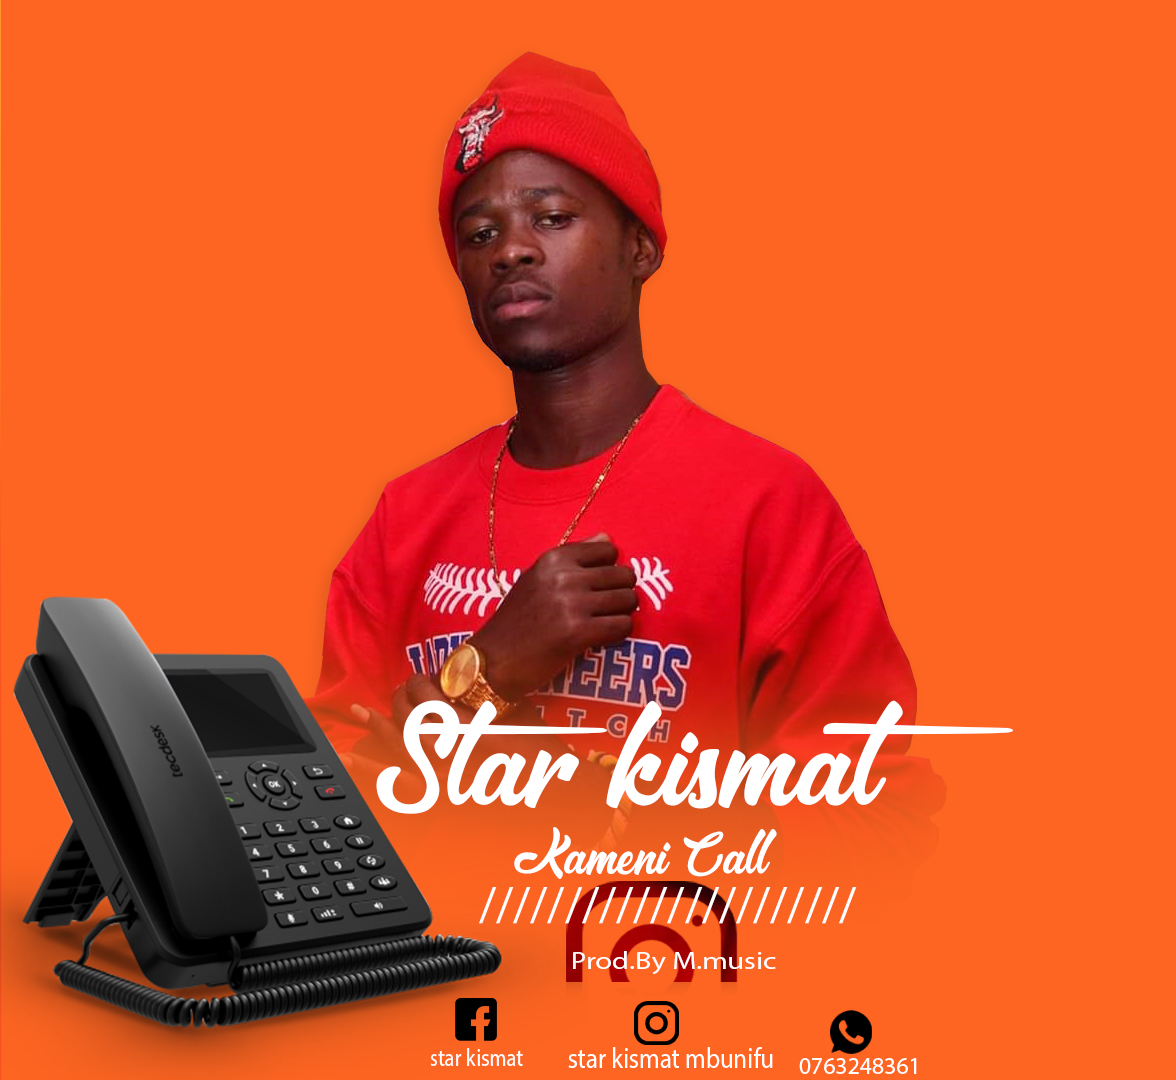 Star kismat - Kame Ni call